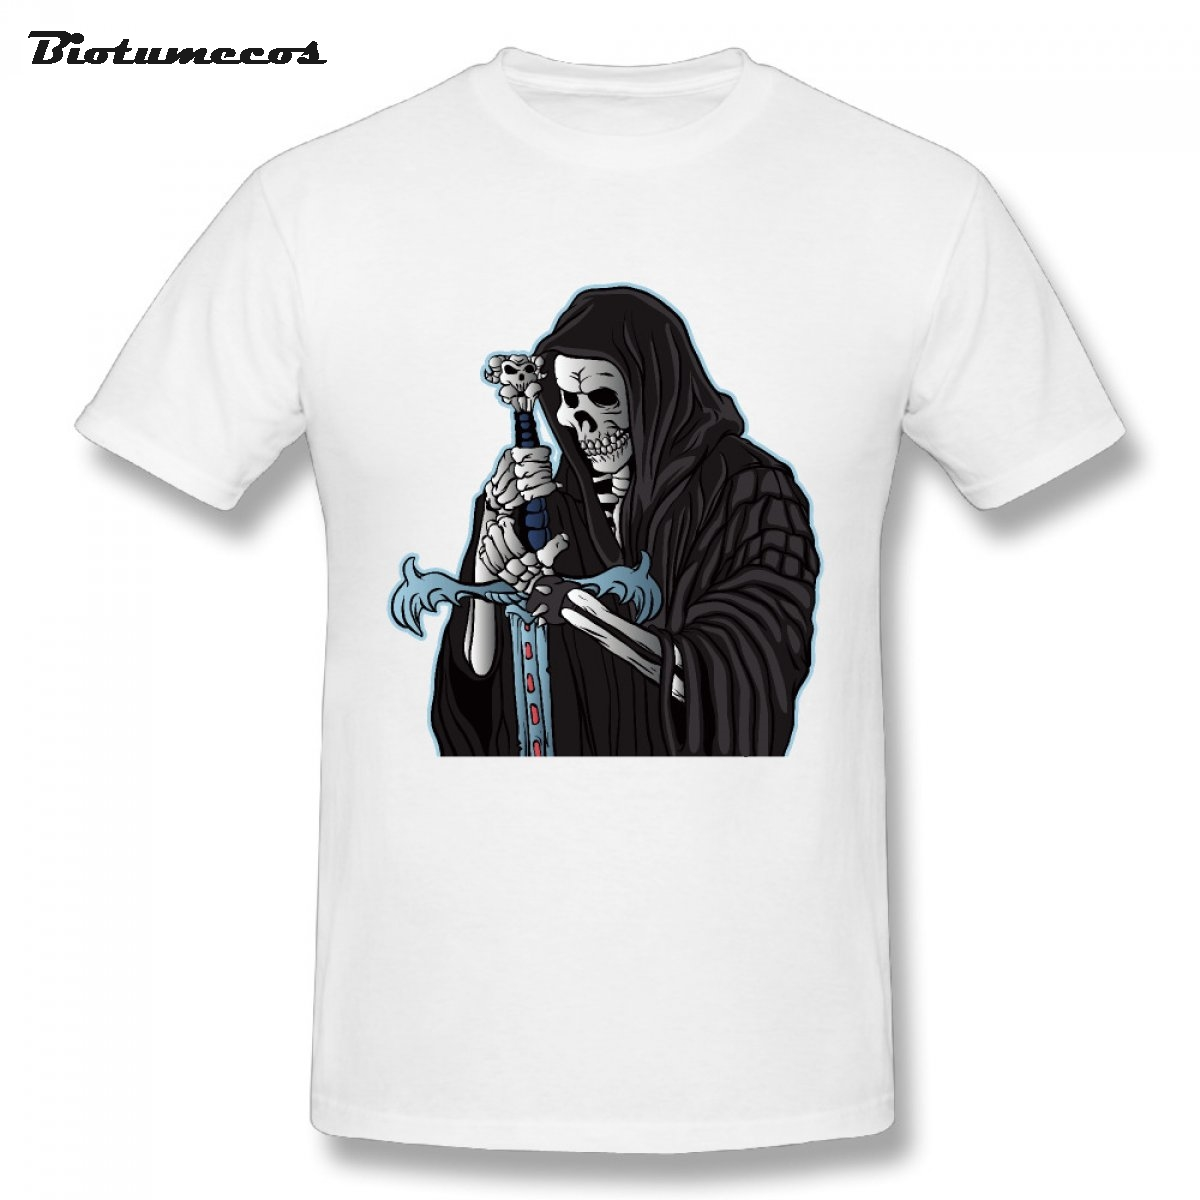 Plus Size Men T-shirt 2017 Skull Wear Robe Take Sword Printed Short Sleeve O-neck 100% Cotton Tees Shirt Top Clothing MTK111